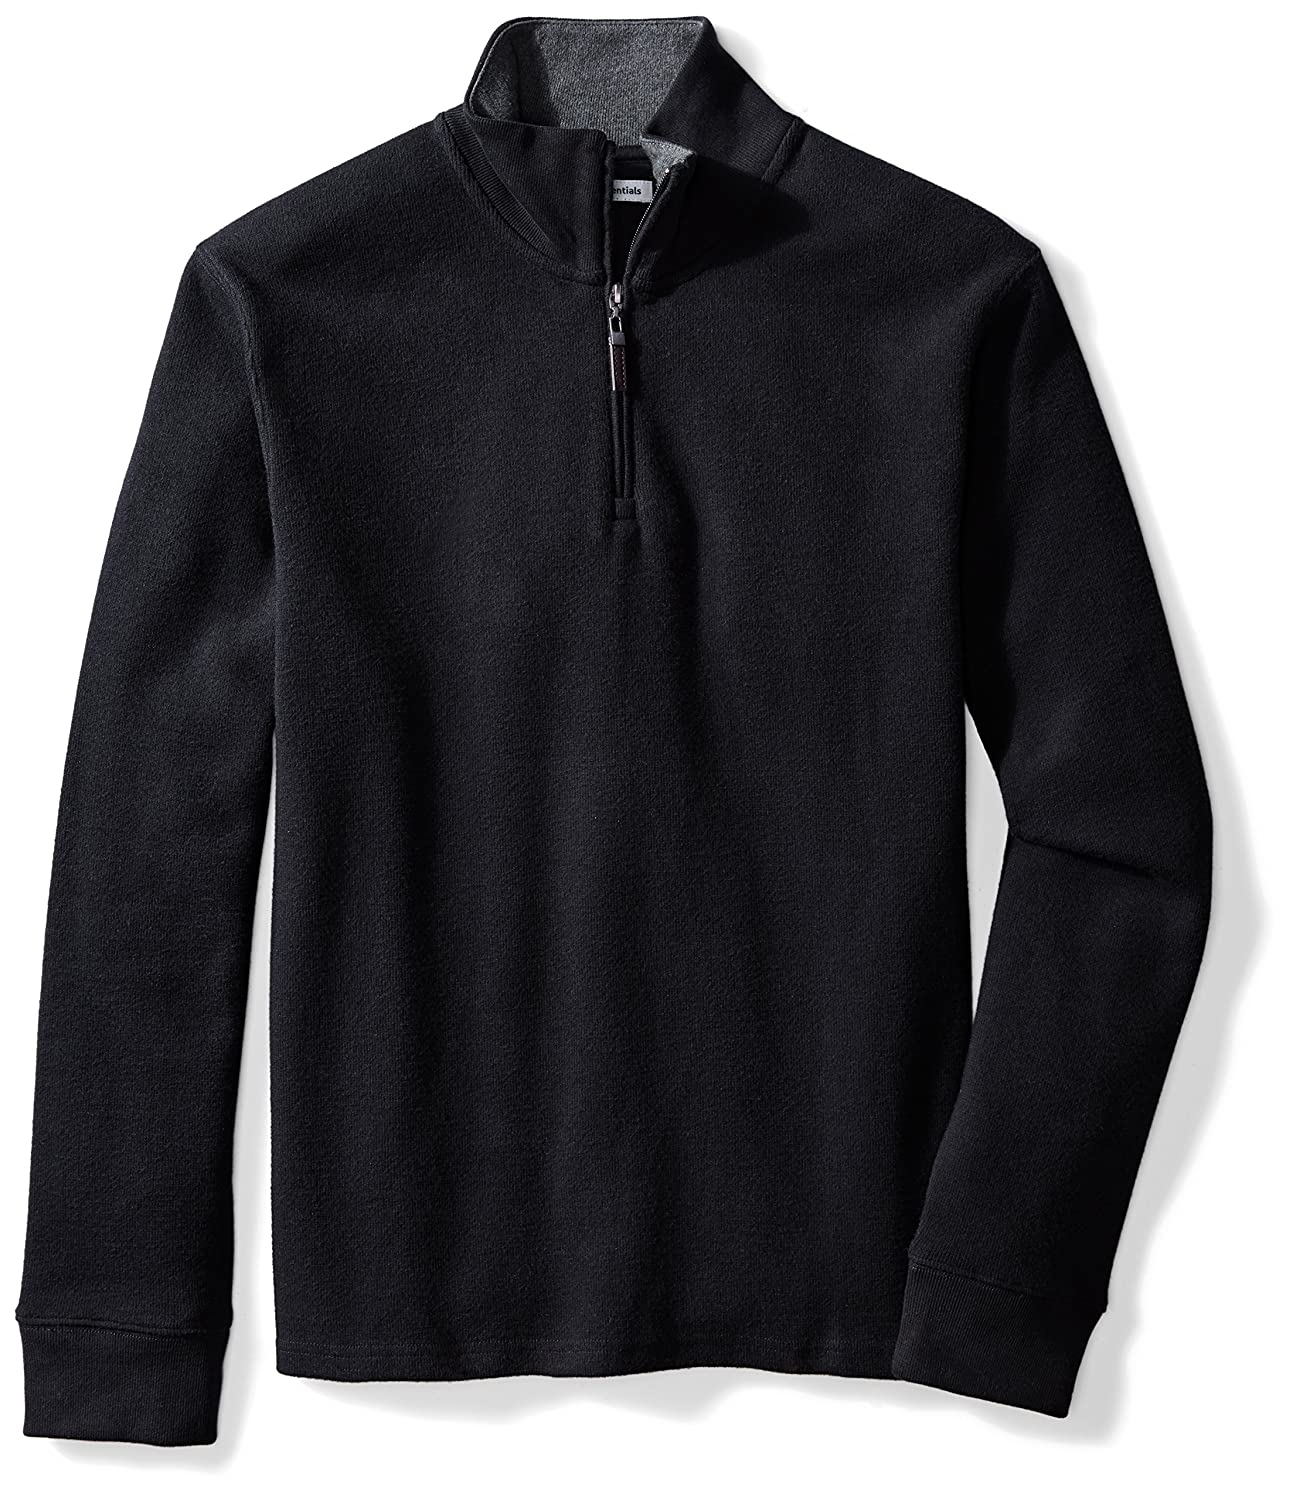 Mens Sweaters | Amazon.com